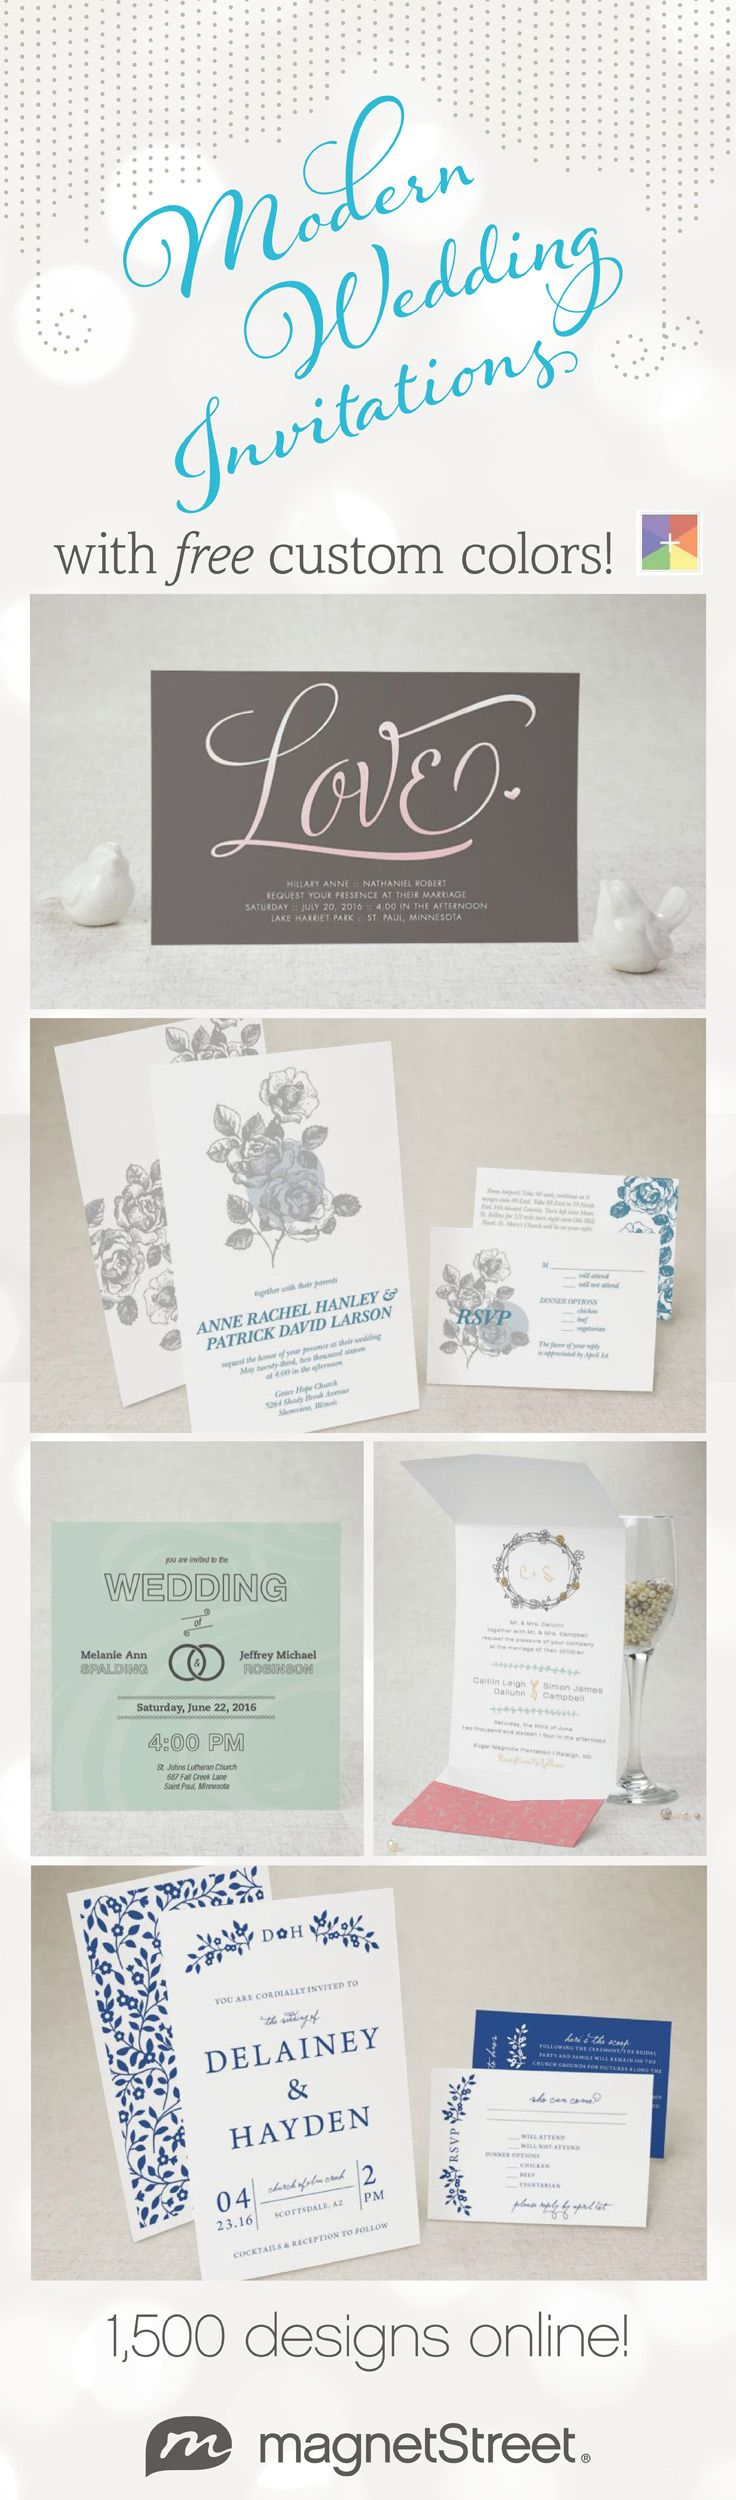 coach outlet shop online Lots of new Wedding Invitations designs to choose from  Plus you can customize style  paper  and color to your style